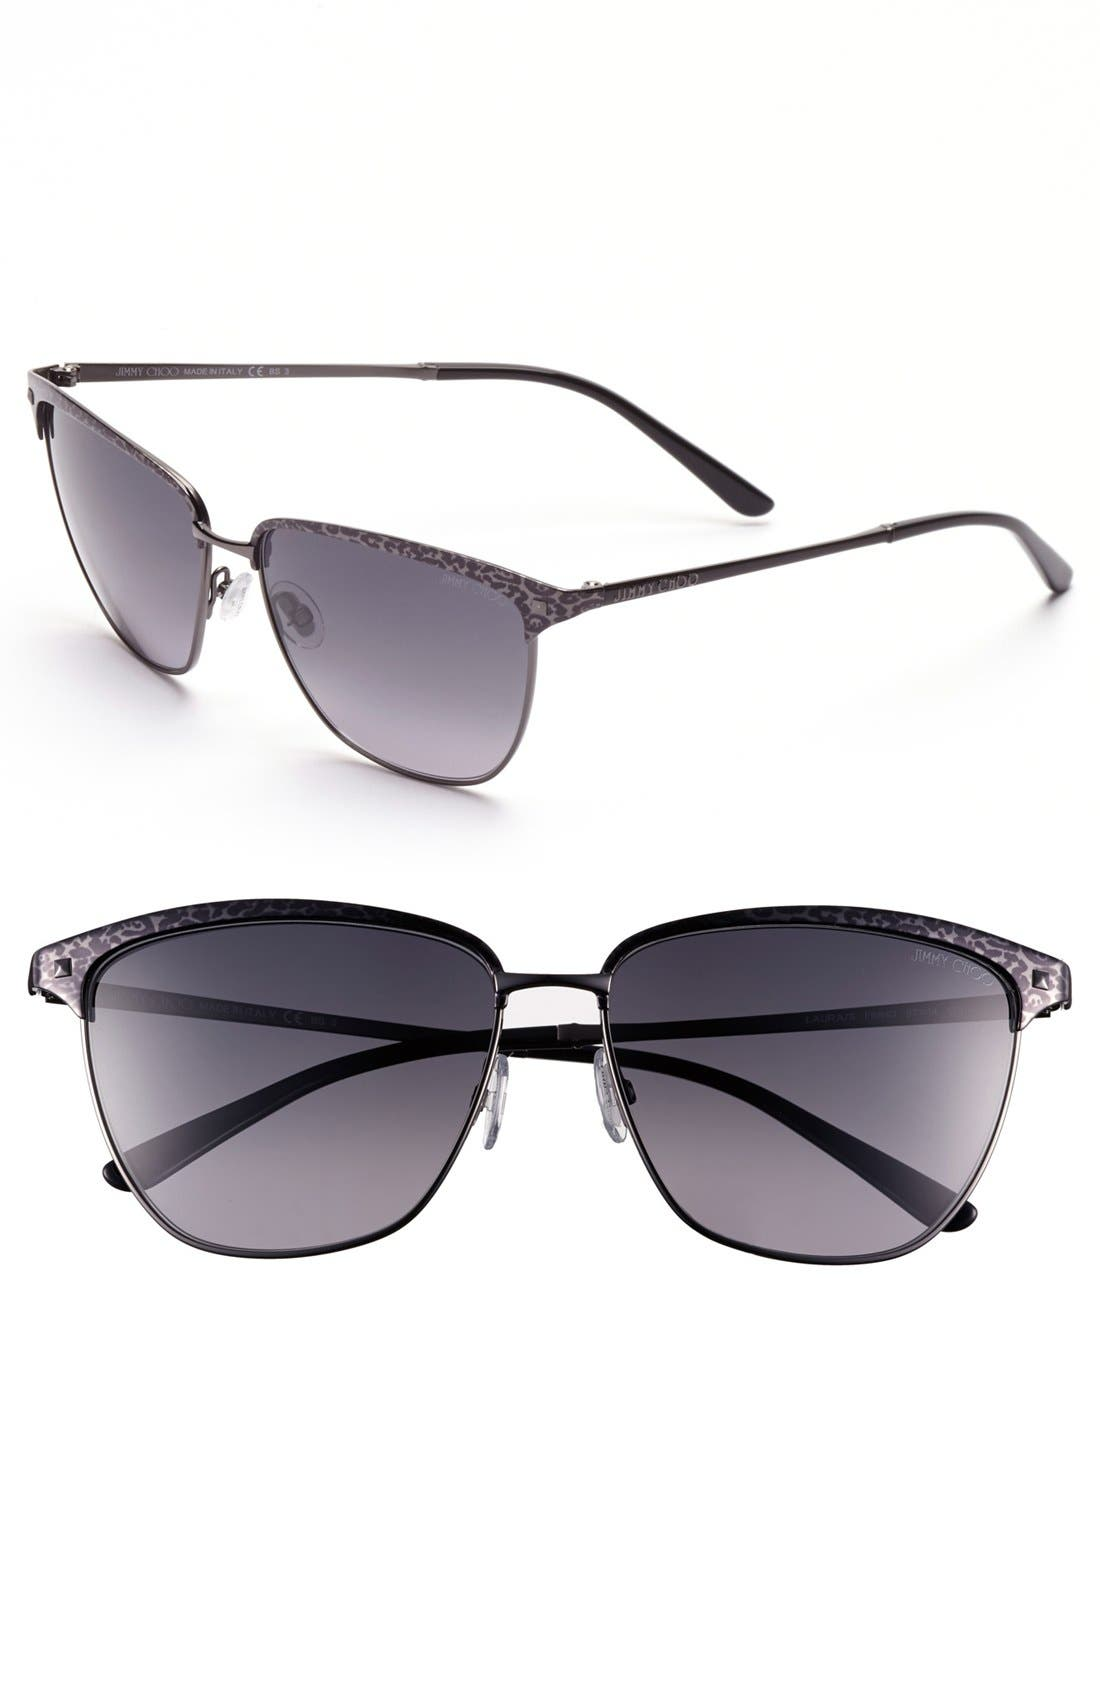 Alternate Image 1 Selected - Jimmy Choo 57mm Retro Sunglasses